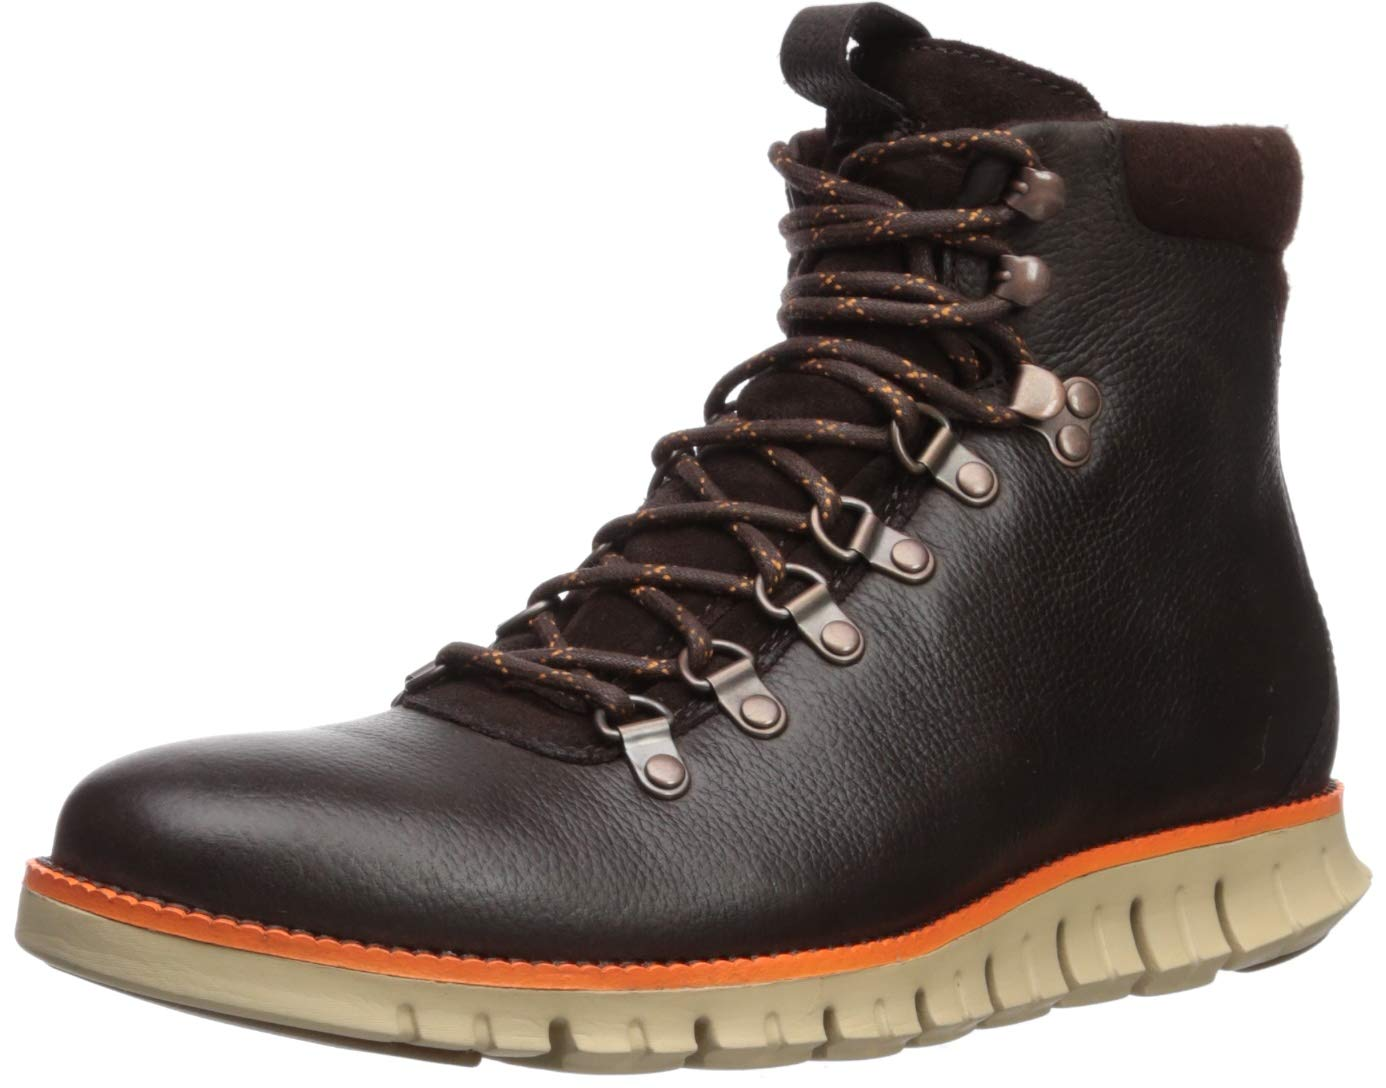 Cole Haan Men's Zerogrand Hiker Fashion Boot Java Leather wr/Turmeric/Cobblestone 9 M US